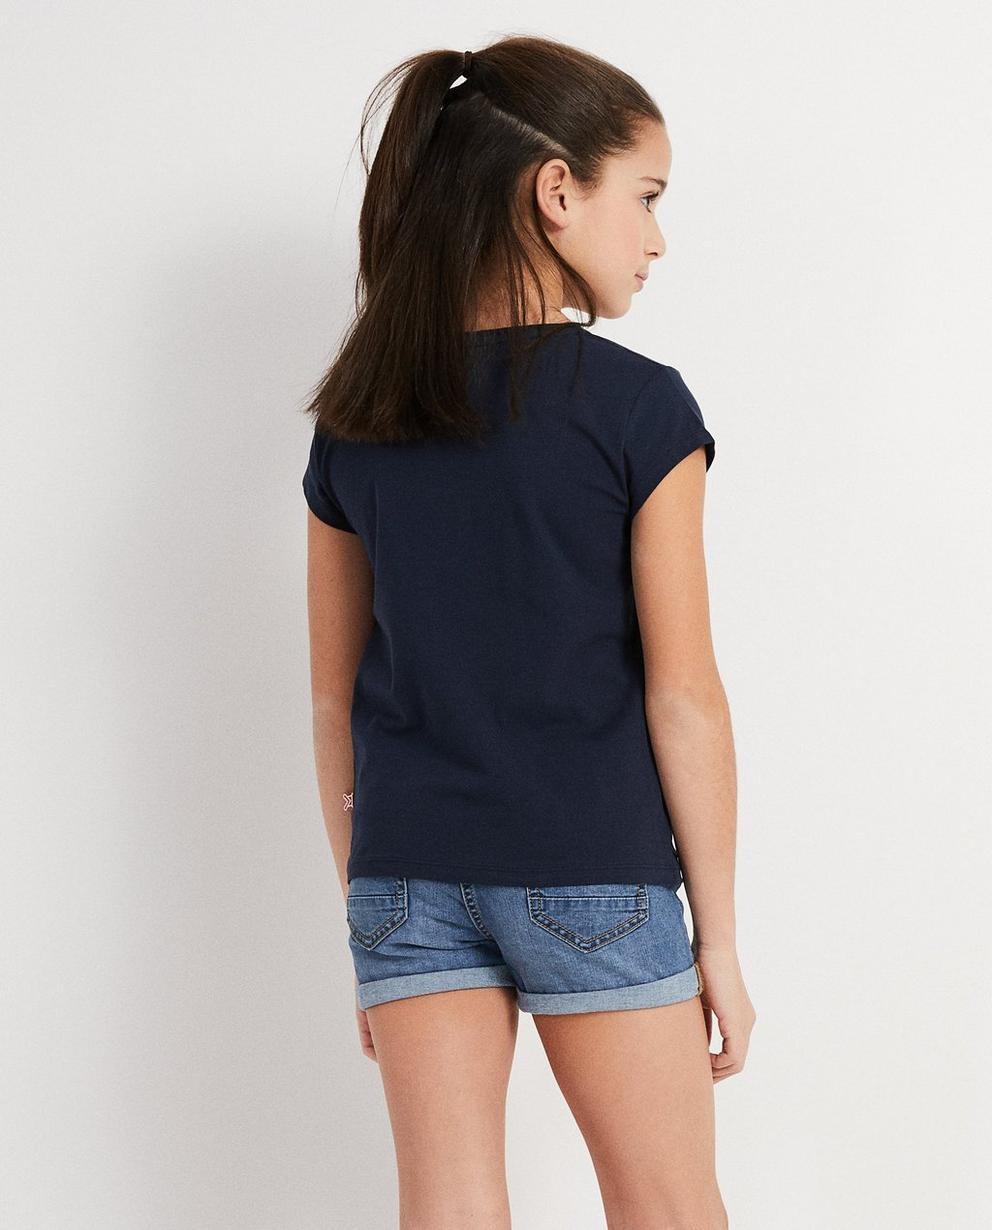 T-Shirts - Navy - Stip it T-Shirt